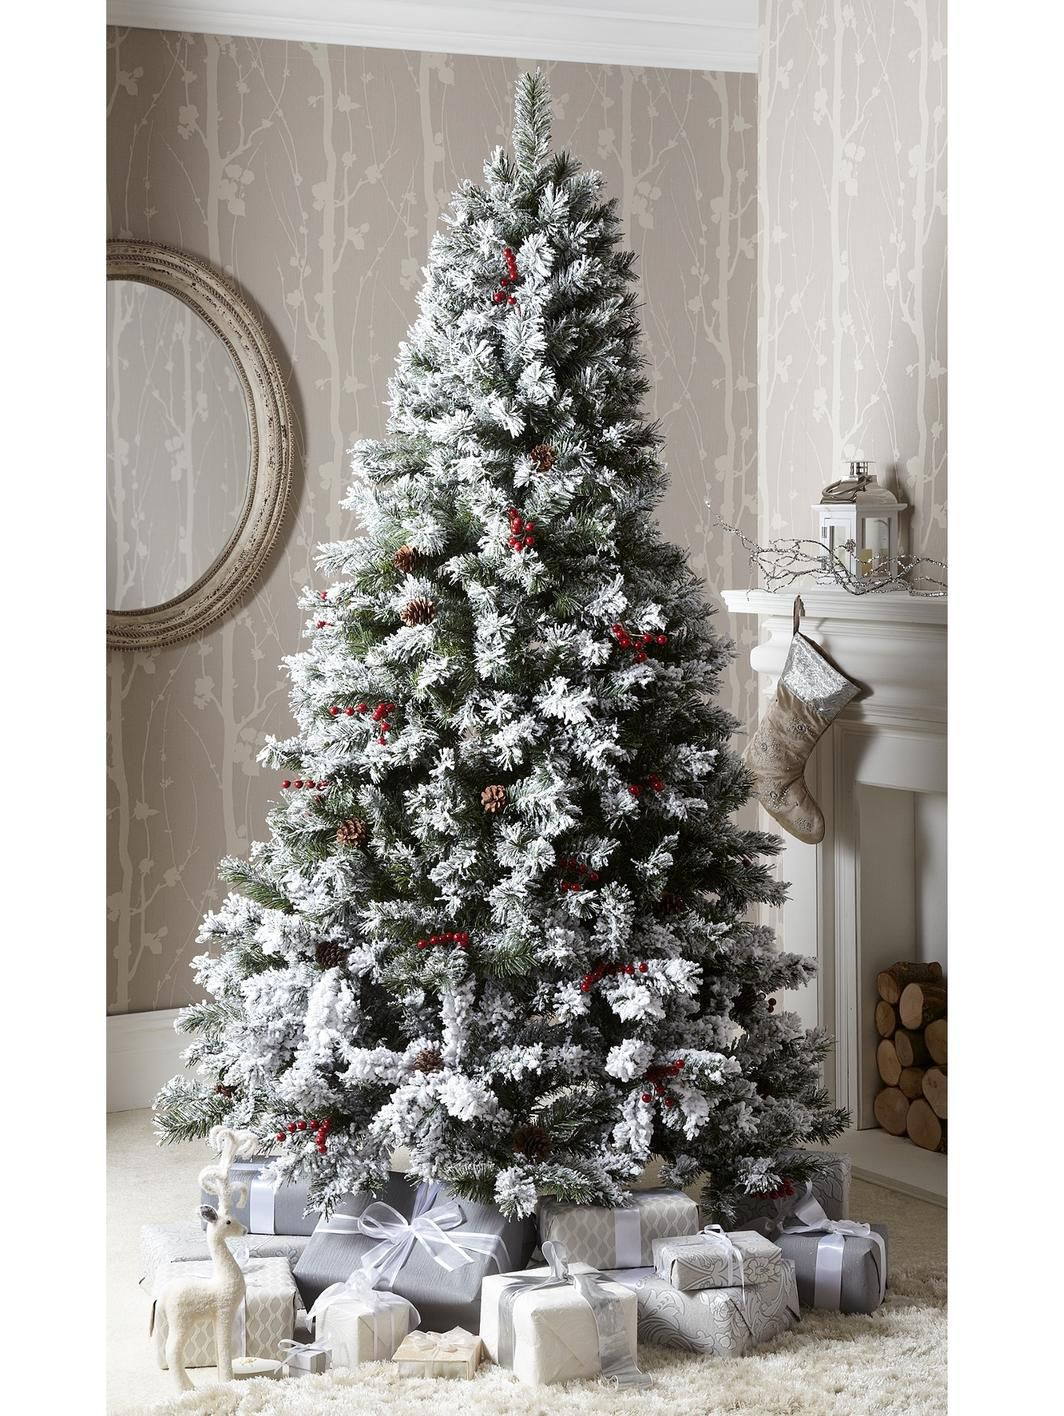 Live Christmas Trees Near Me Gallery di 2020